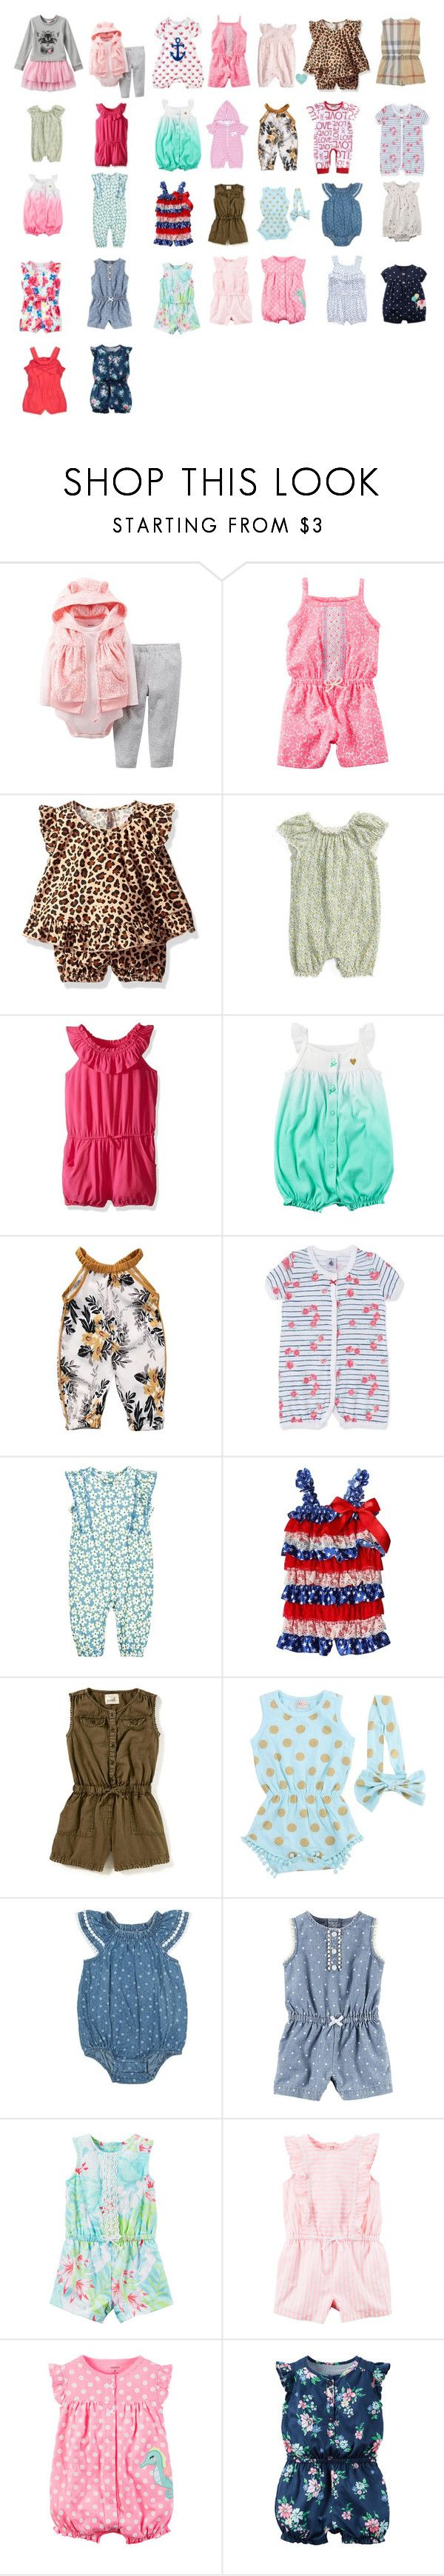 """June"" by ctownend04 ❤ liked on Polyvore featuring Carter's, The Children's Place, Burberry, Kissy Kissy, STELLA McCARTNEY and Jordache"